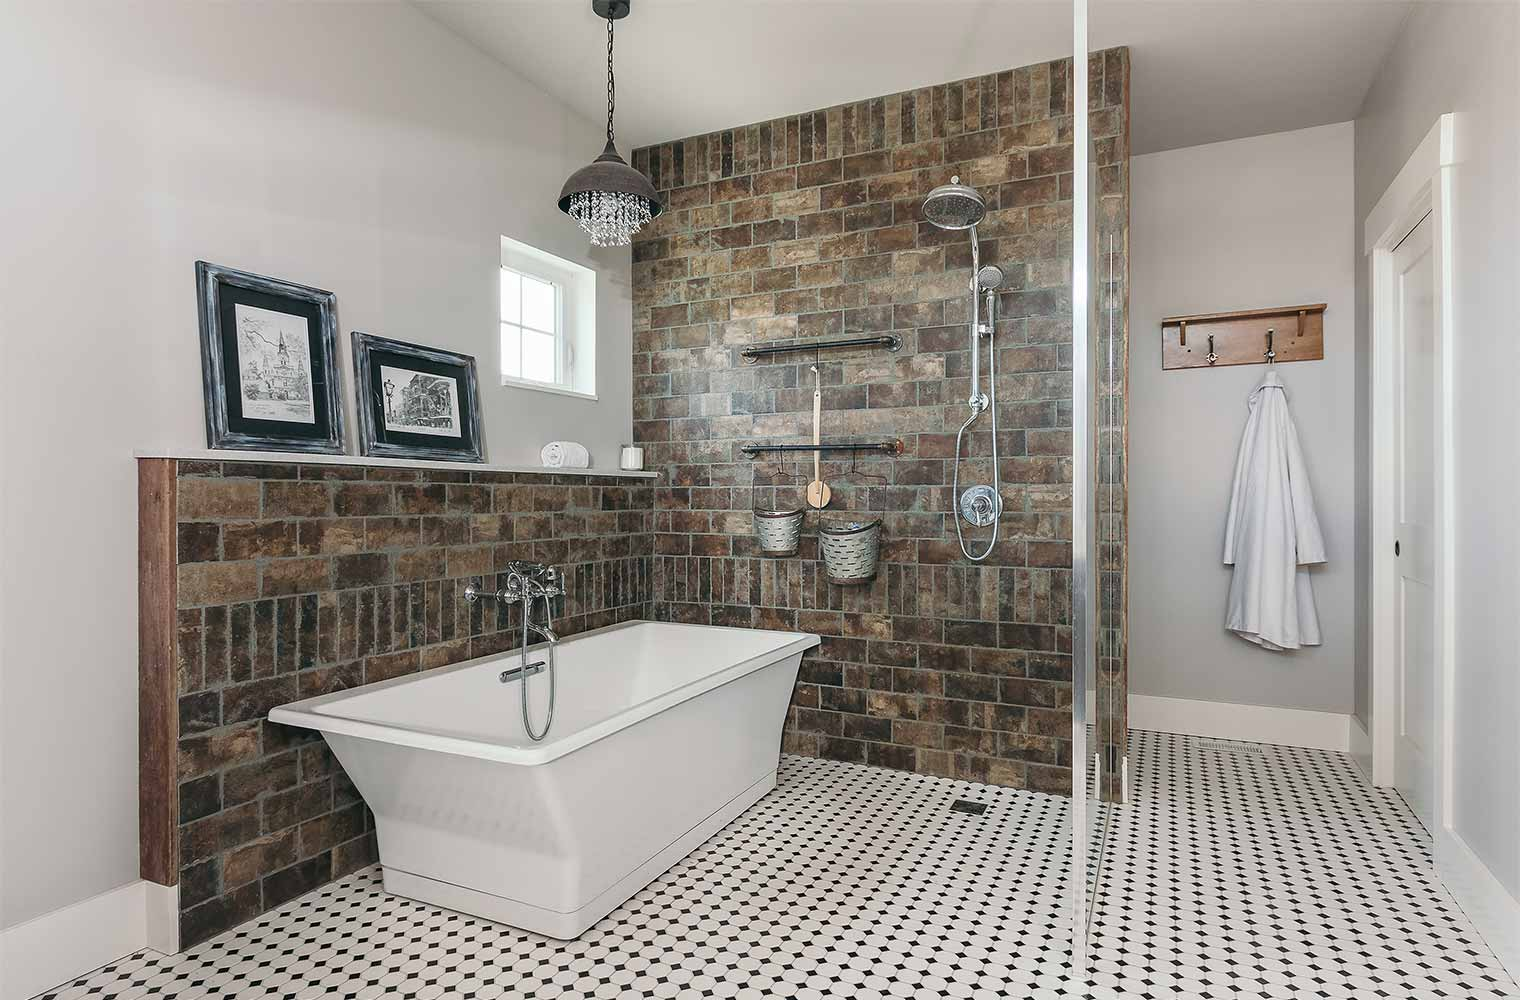 Shower Or A Soak Is A Shower Tub Or Combo Best For You